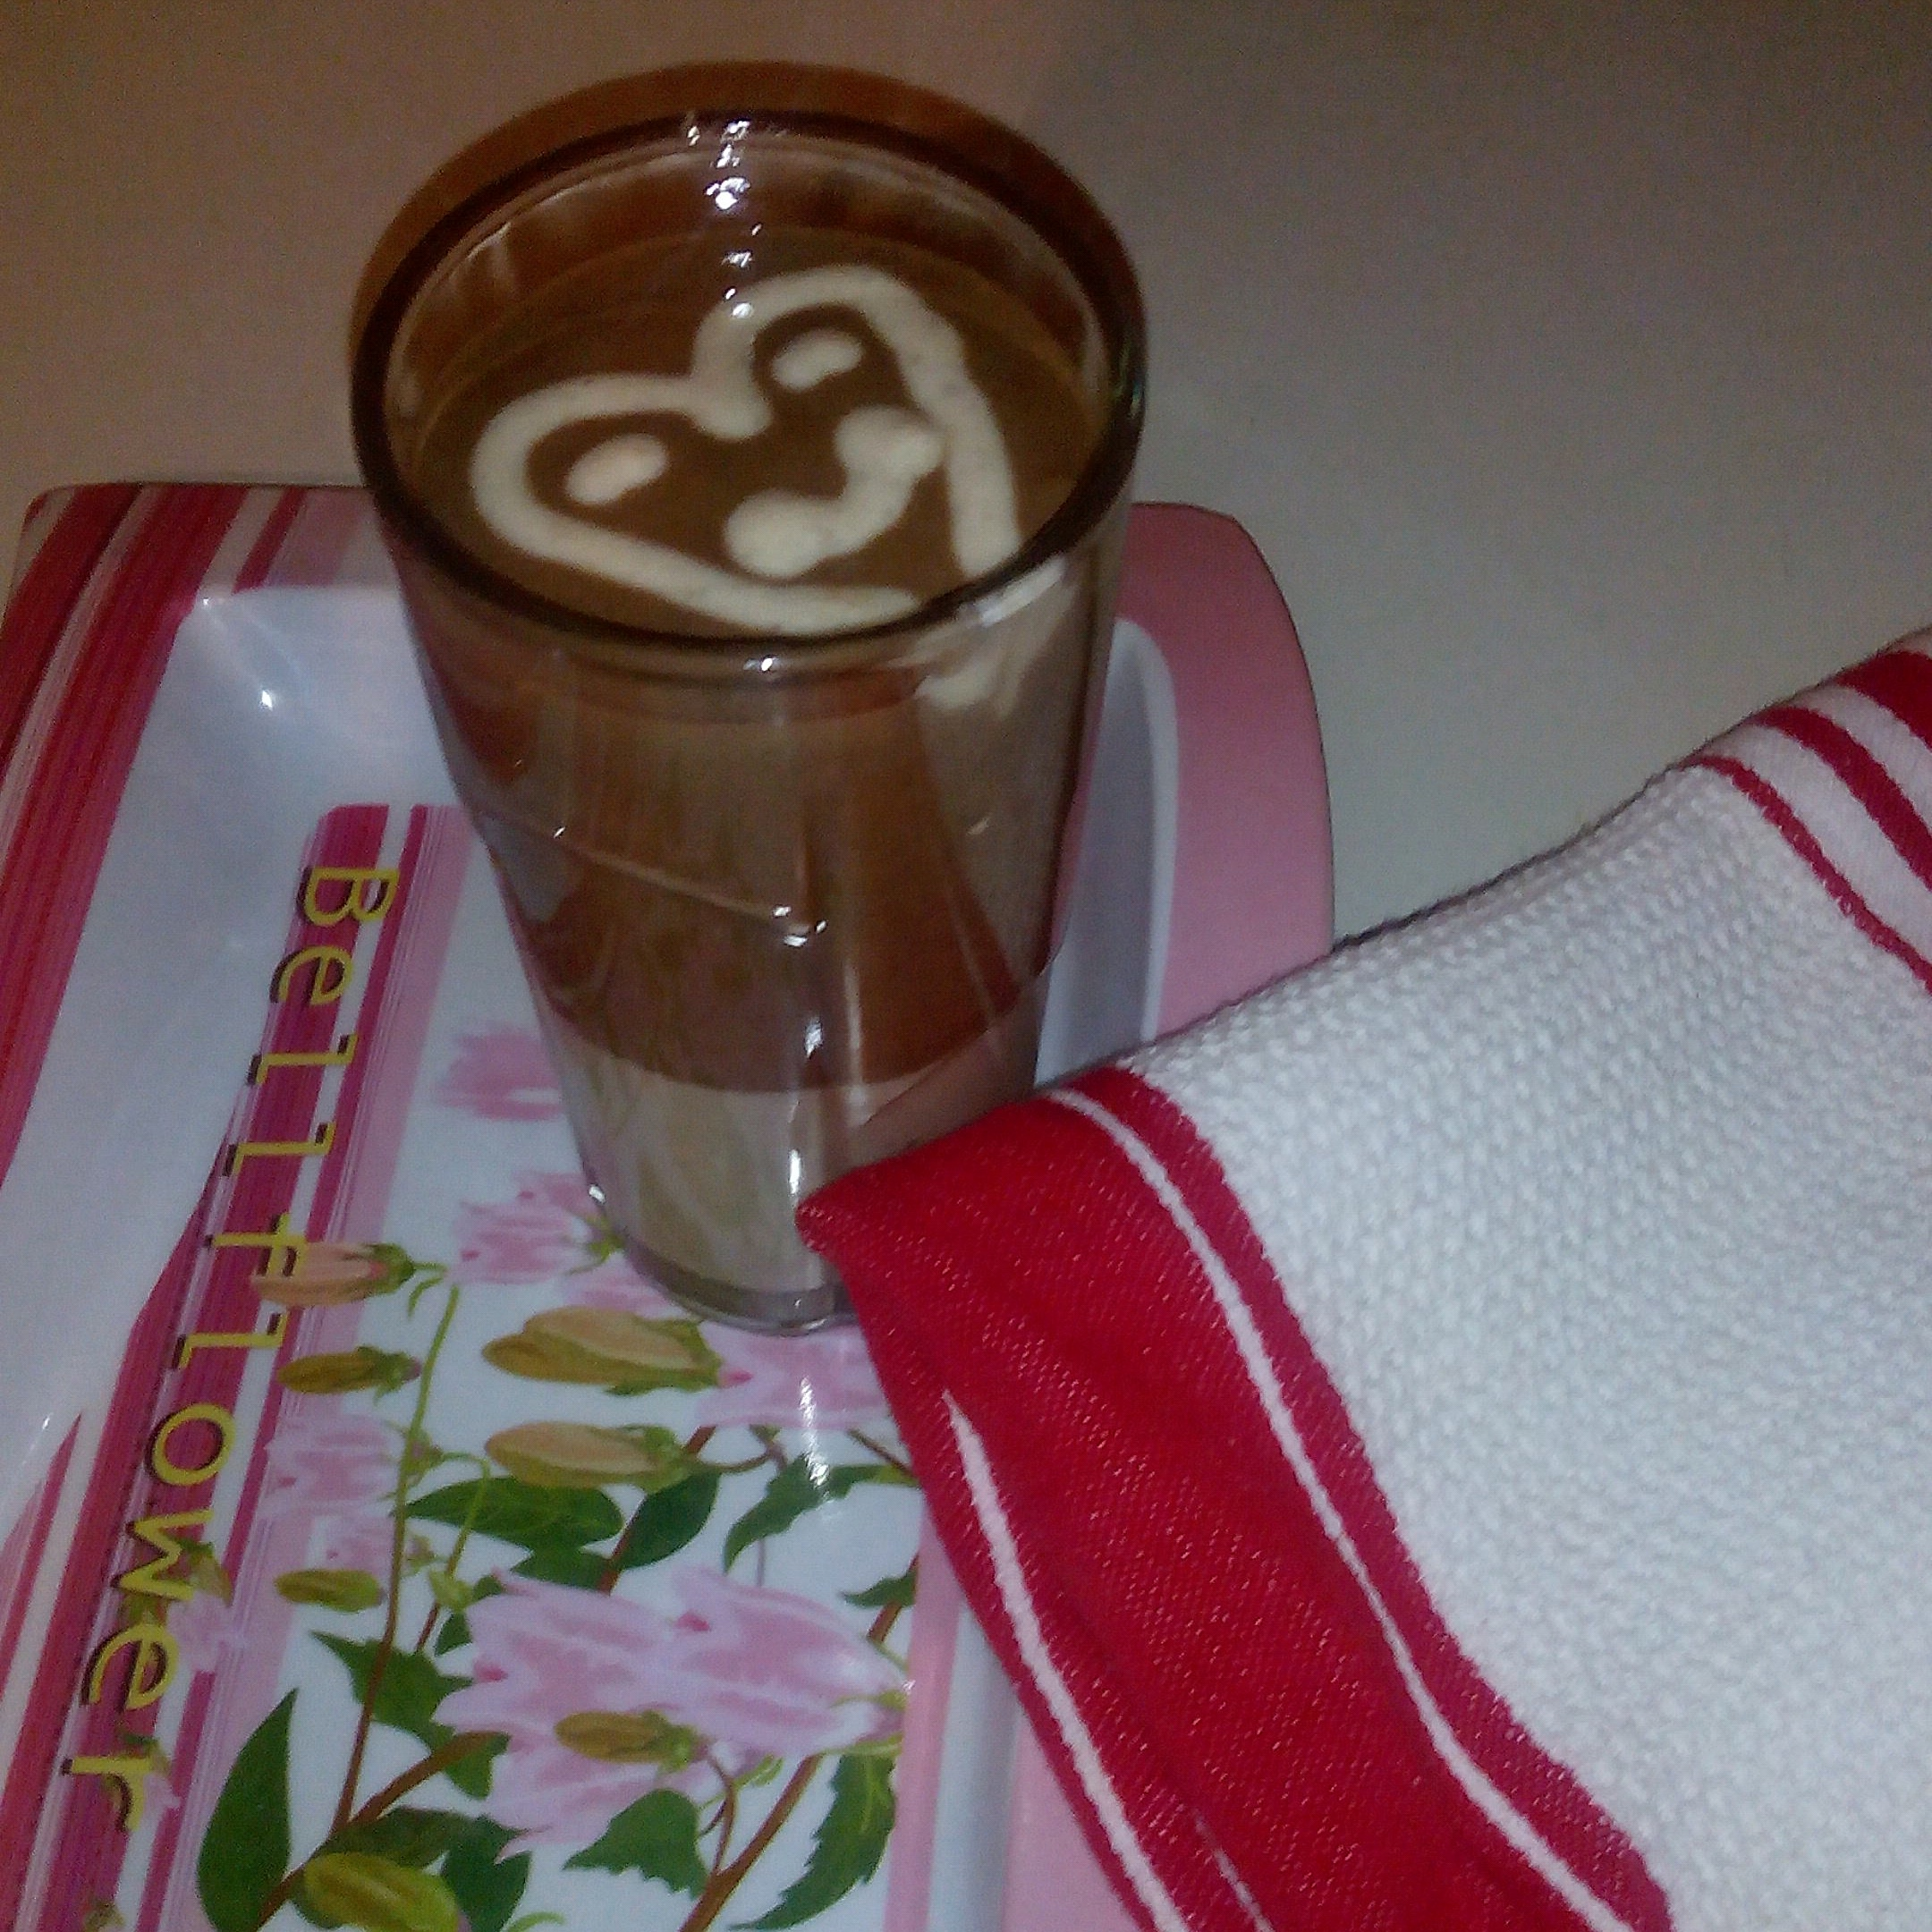 How To Prepare Chocolate Banana Smoothie At Home